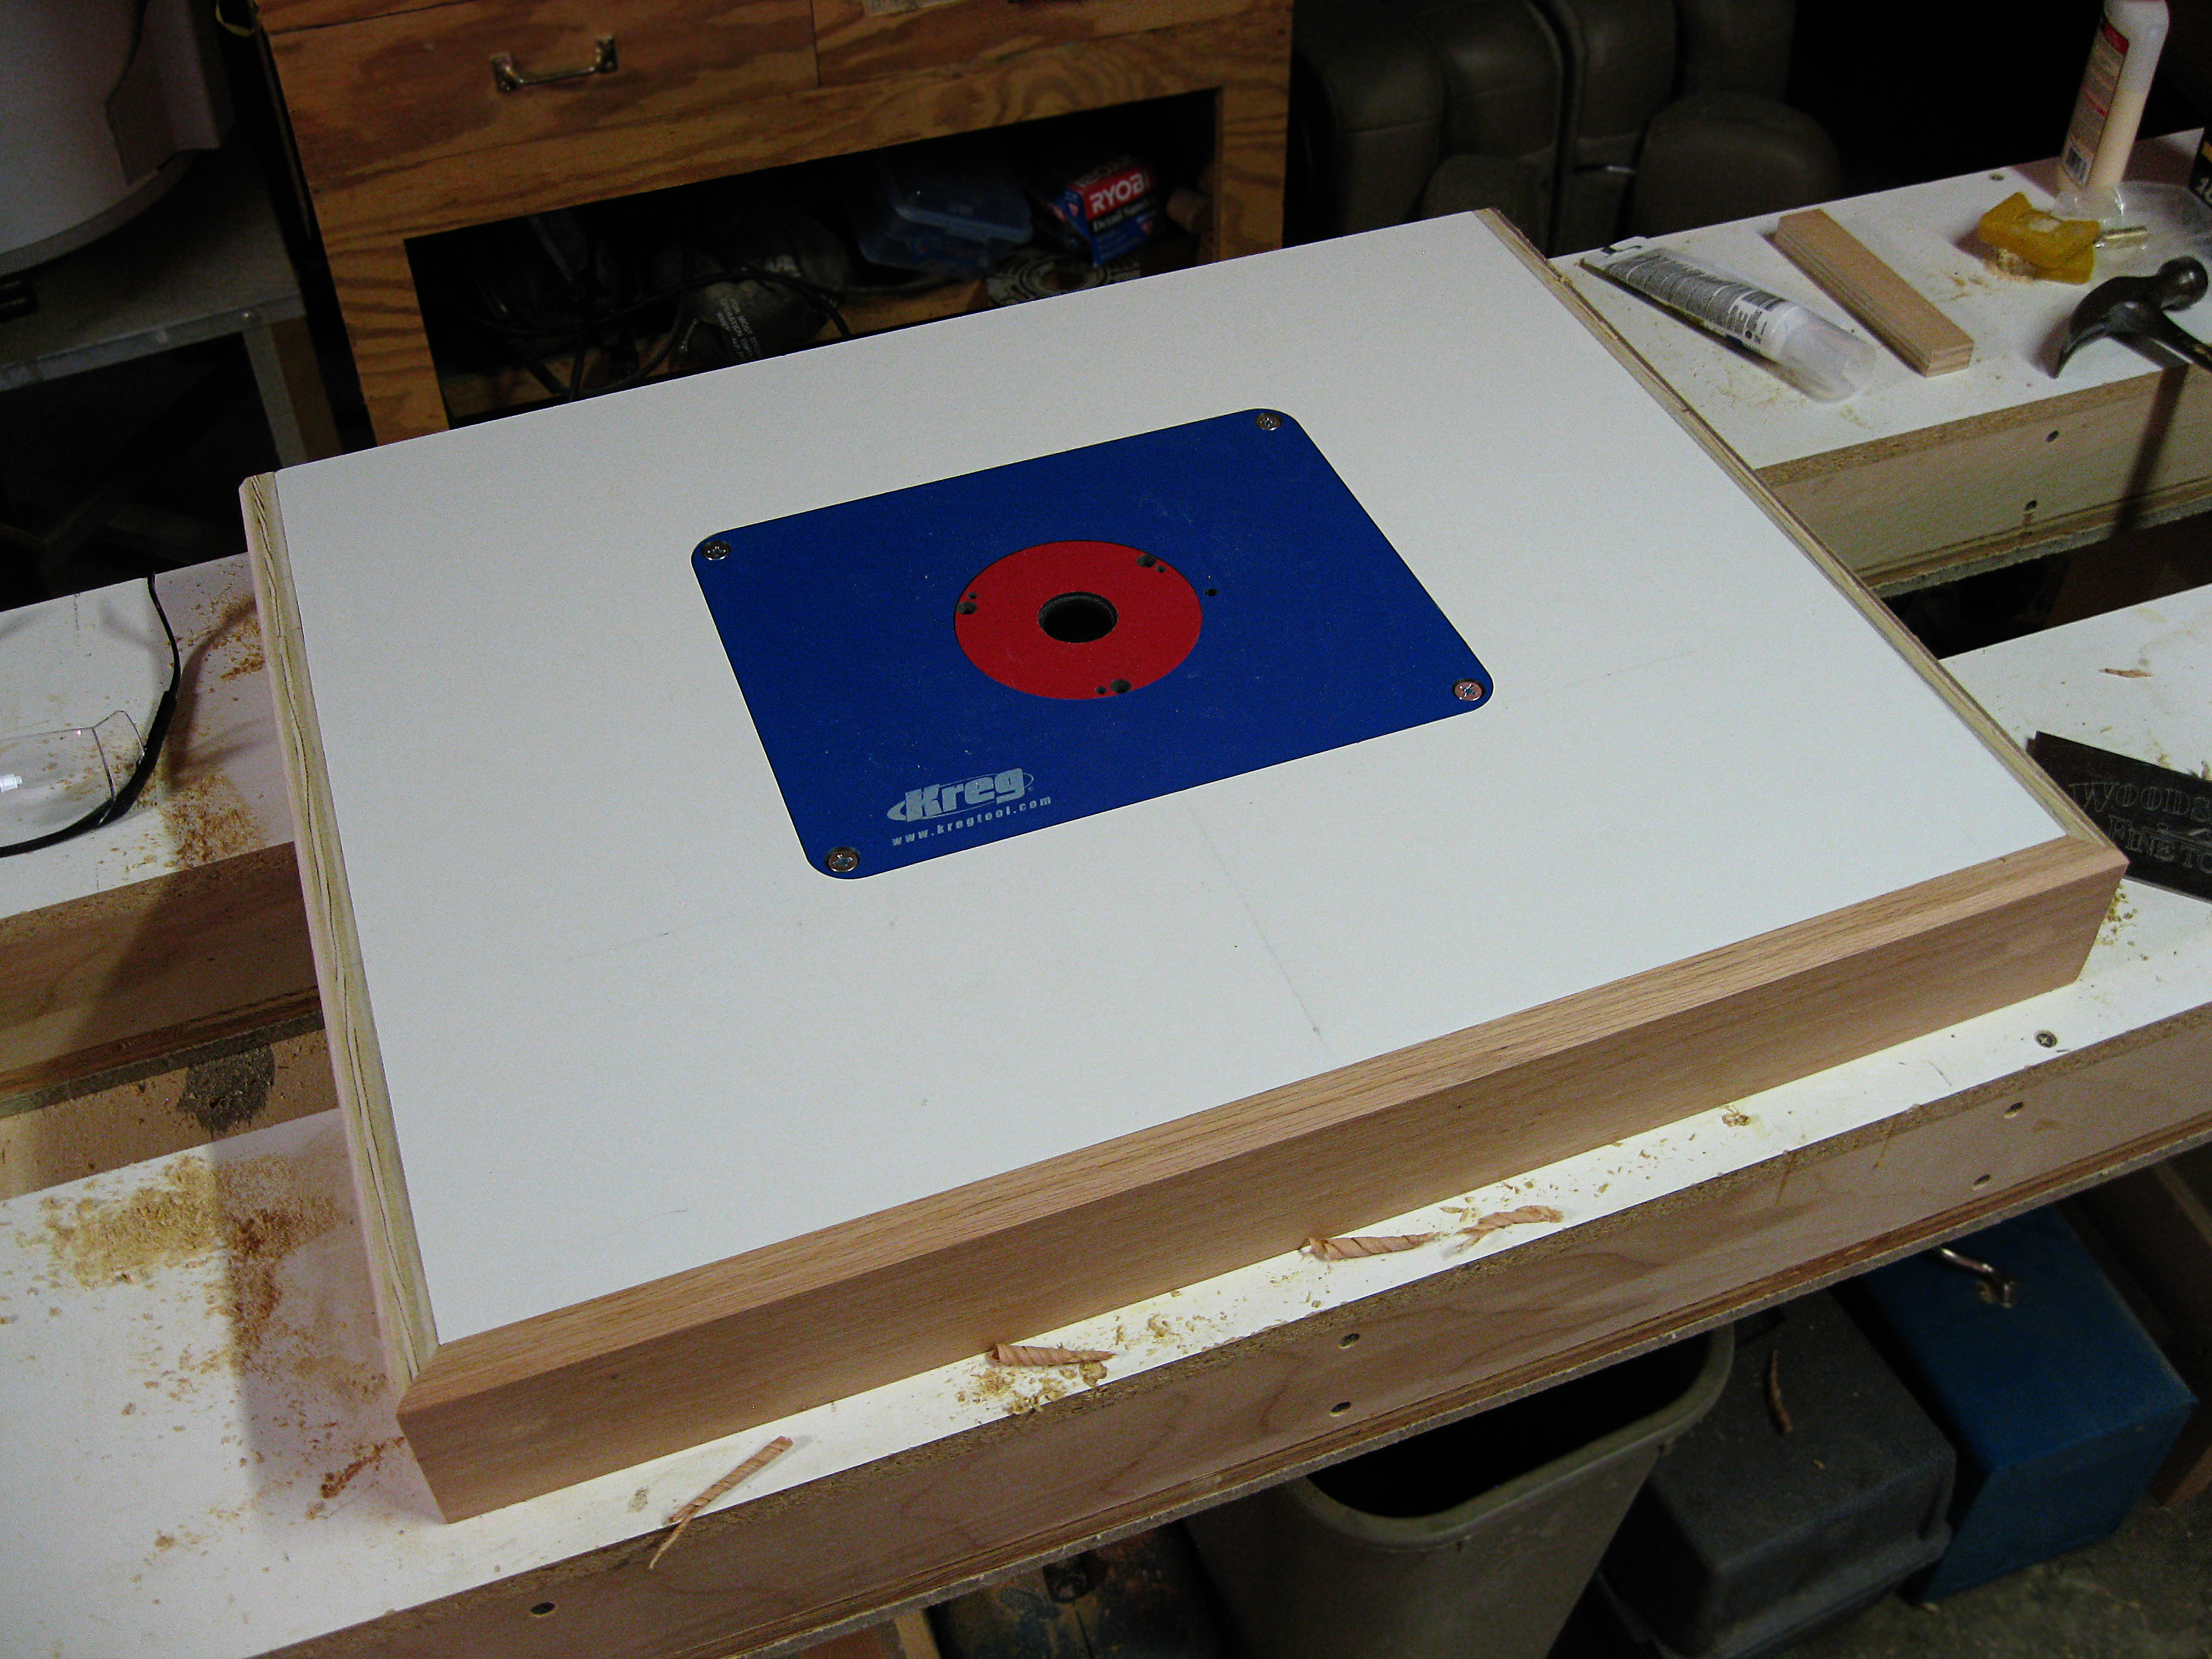 Best ideas about DIY Router Table Top . Save or Pin Kreg router table cabinet plans Plans DIY How to Make Now.